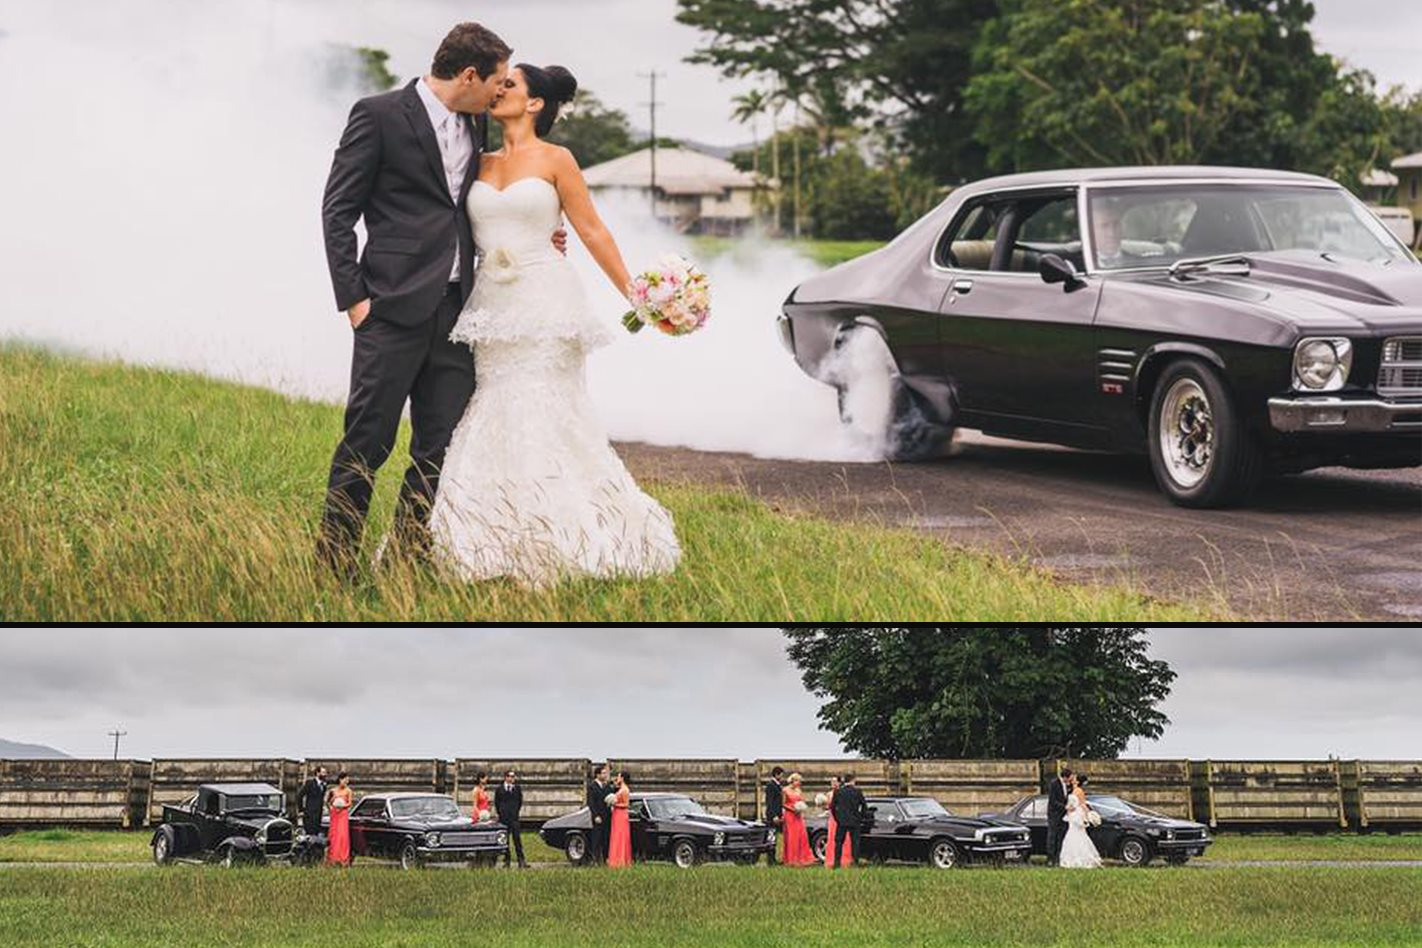 Brad Hanrahan's wedding cars